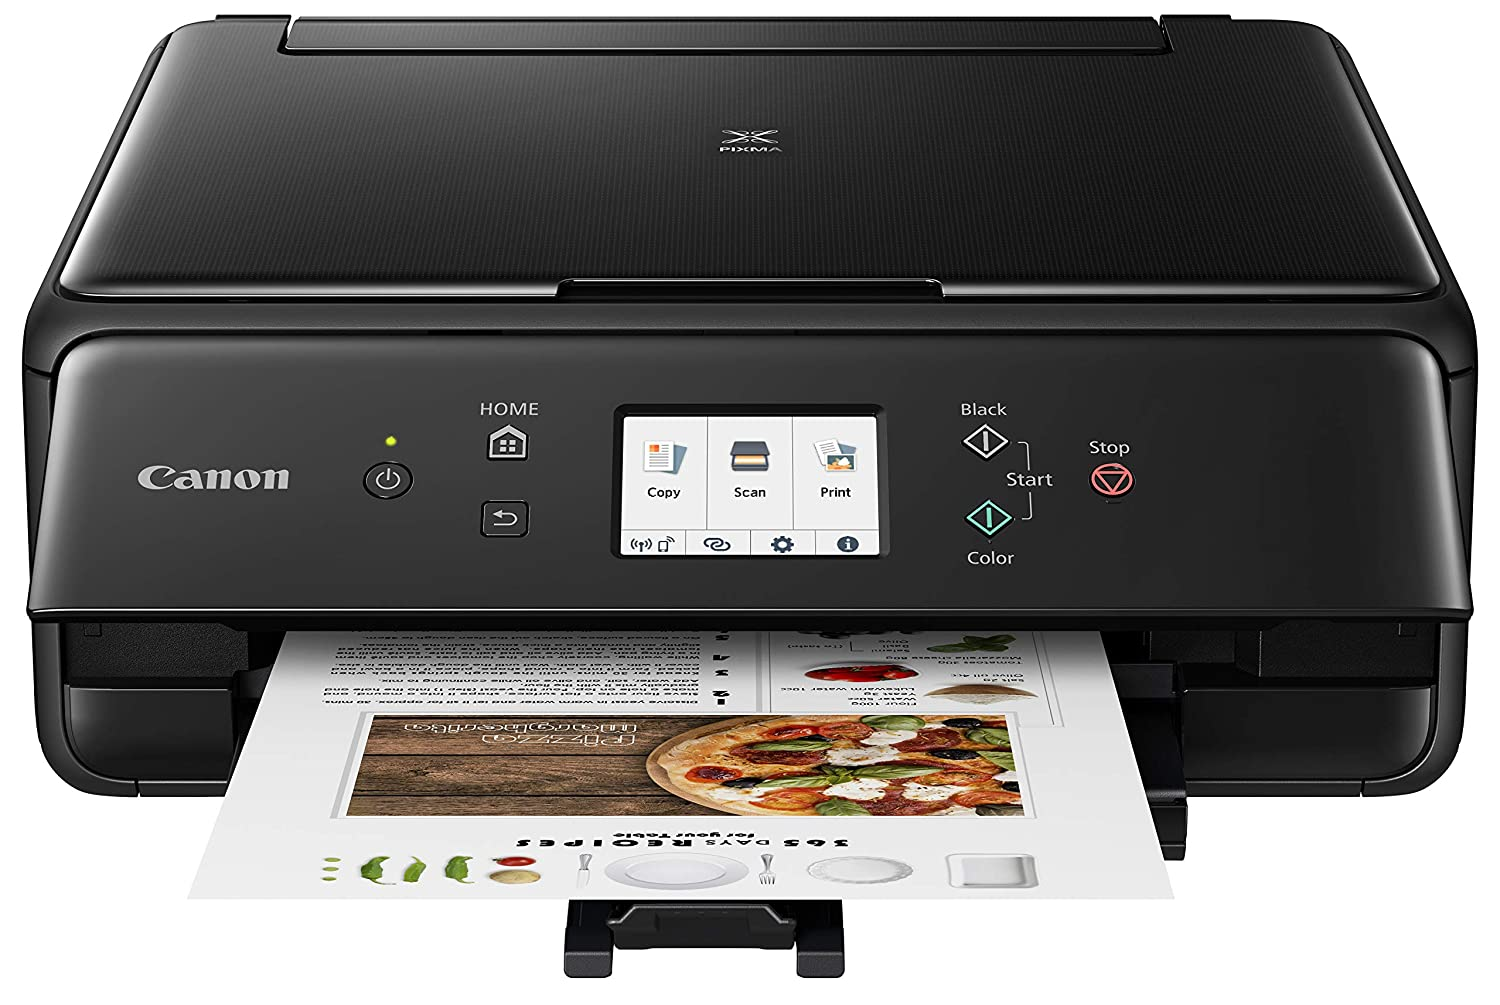 Top 11 Best Printers for Chromebook Reviews in 2019 5